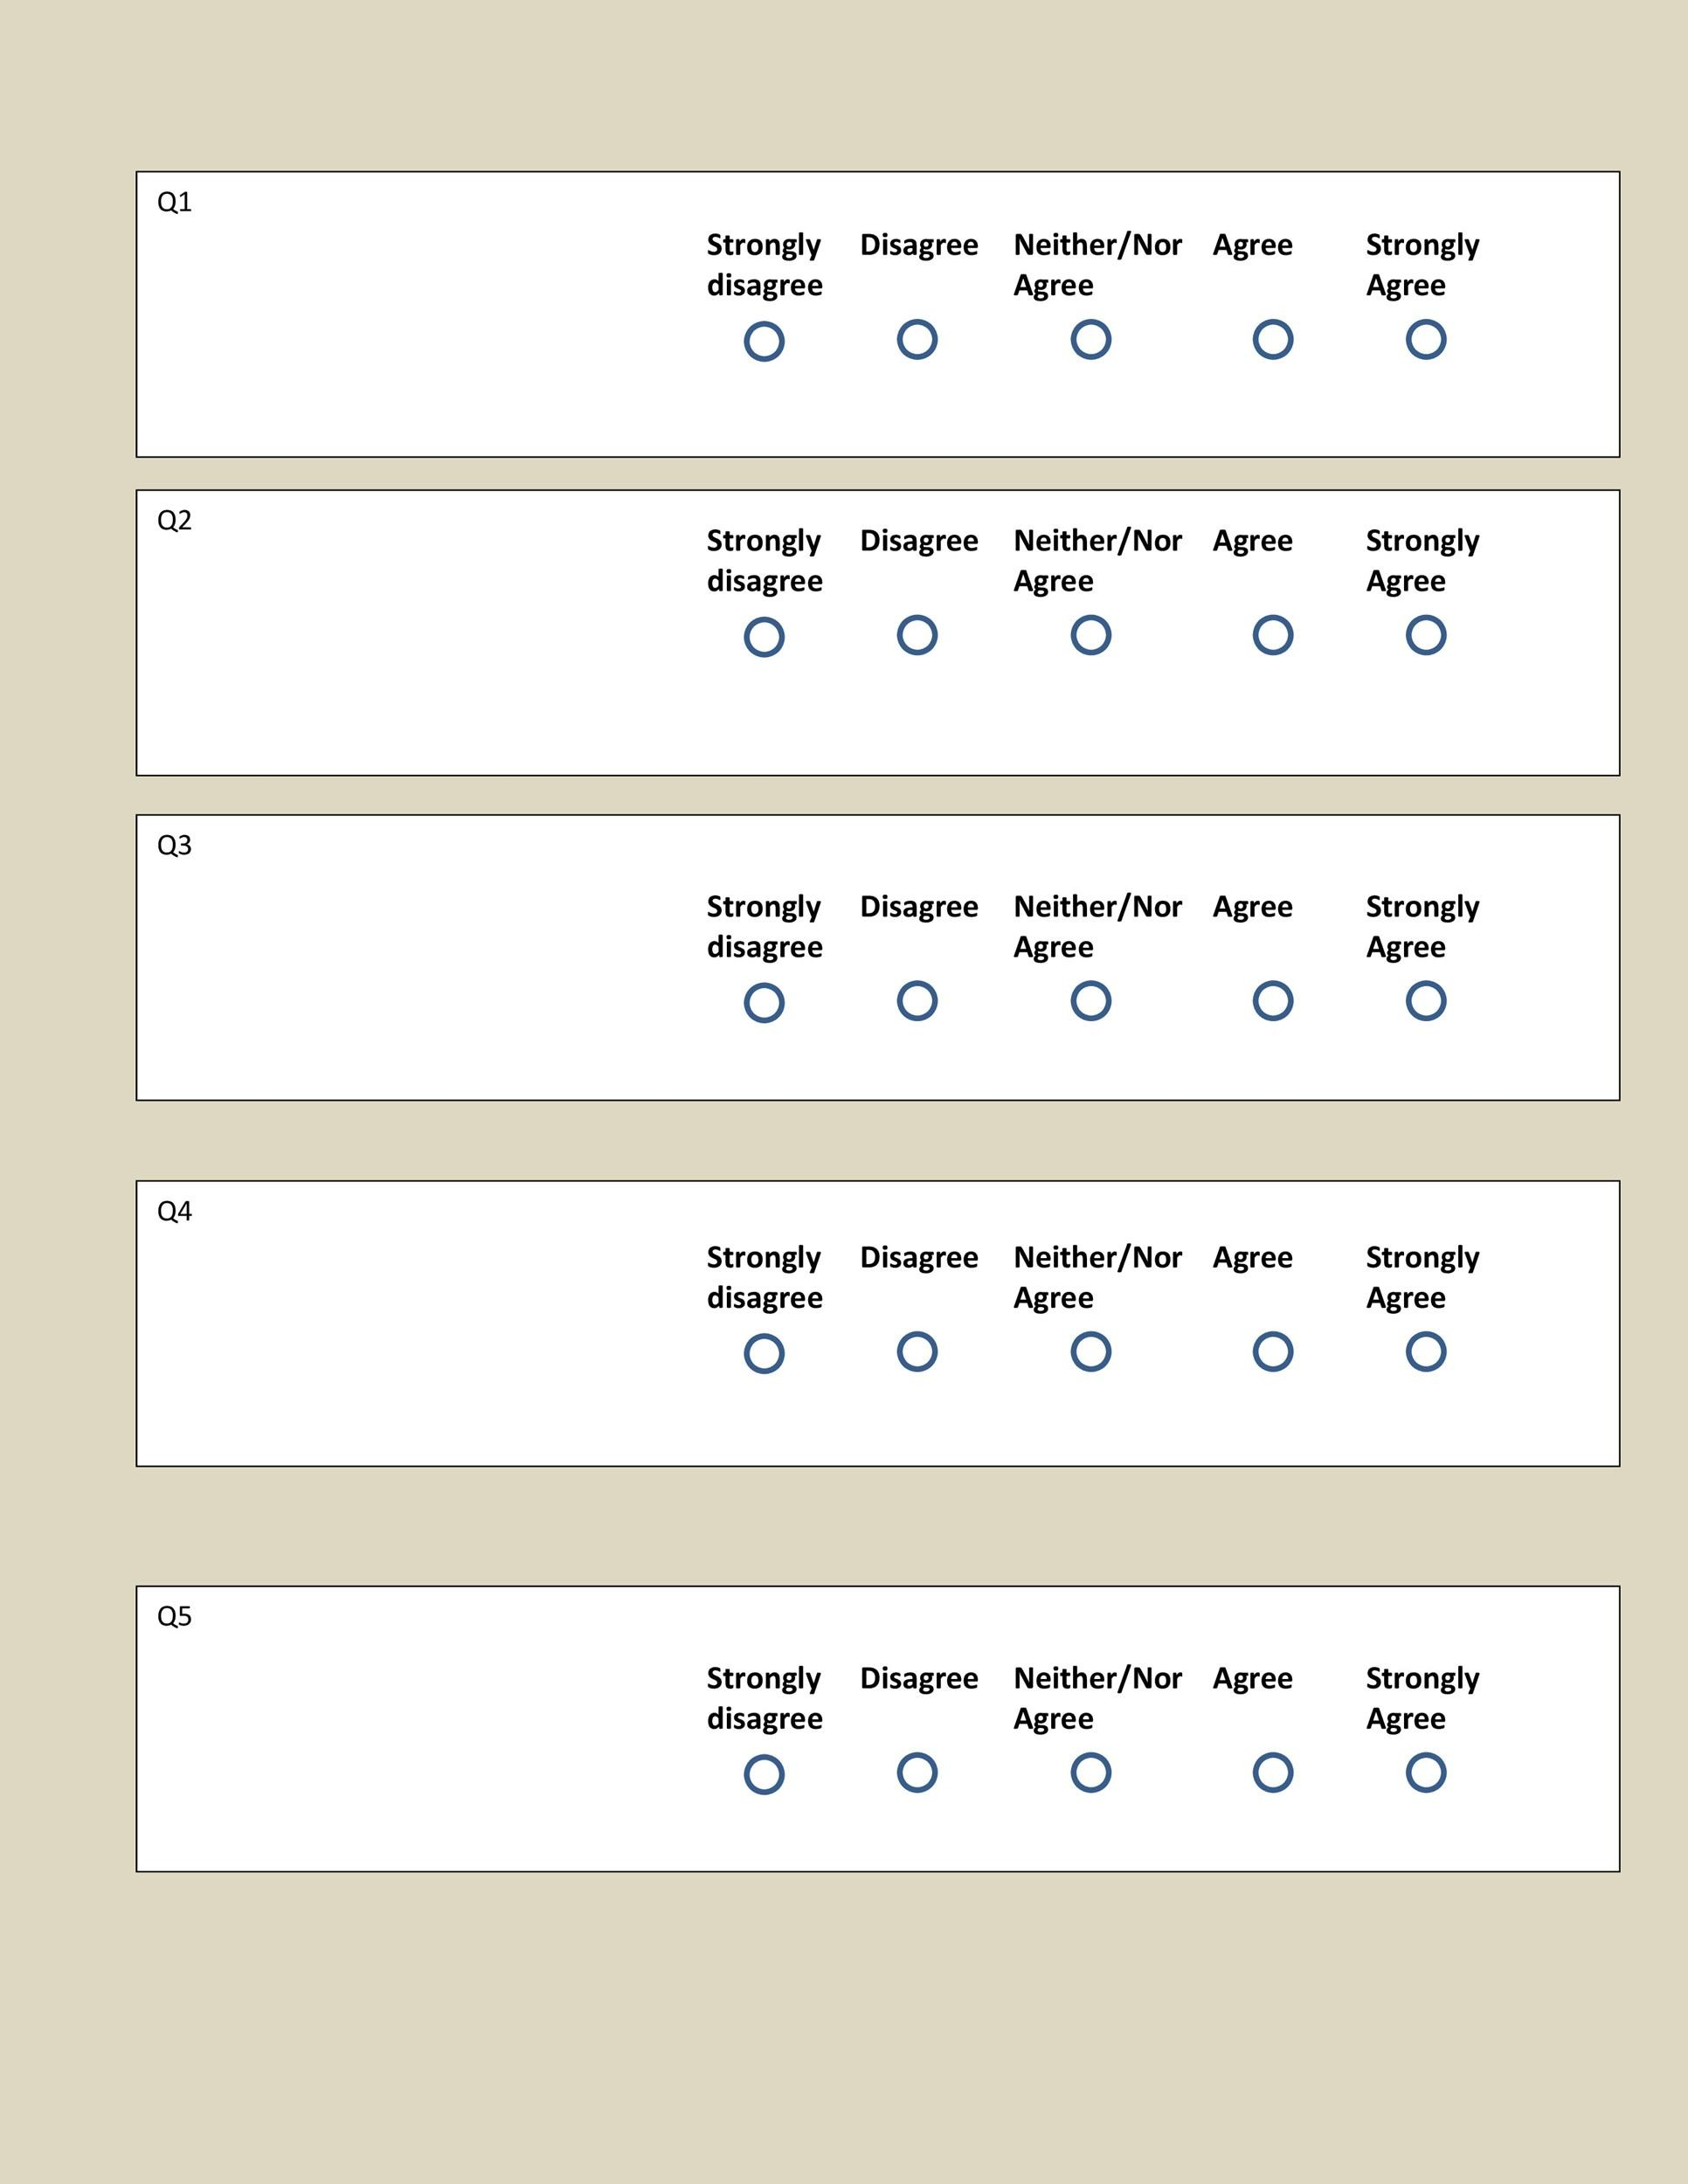 30 Free Likert Scale Templates  Examples - Template Lab - likert scale template